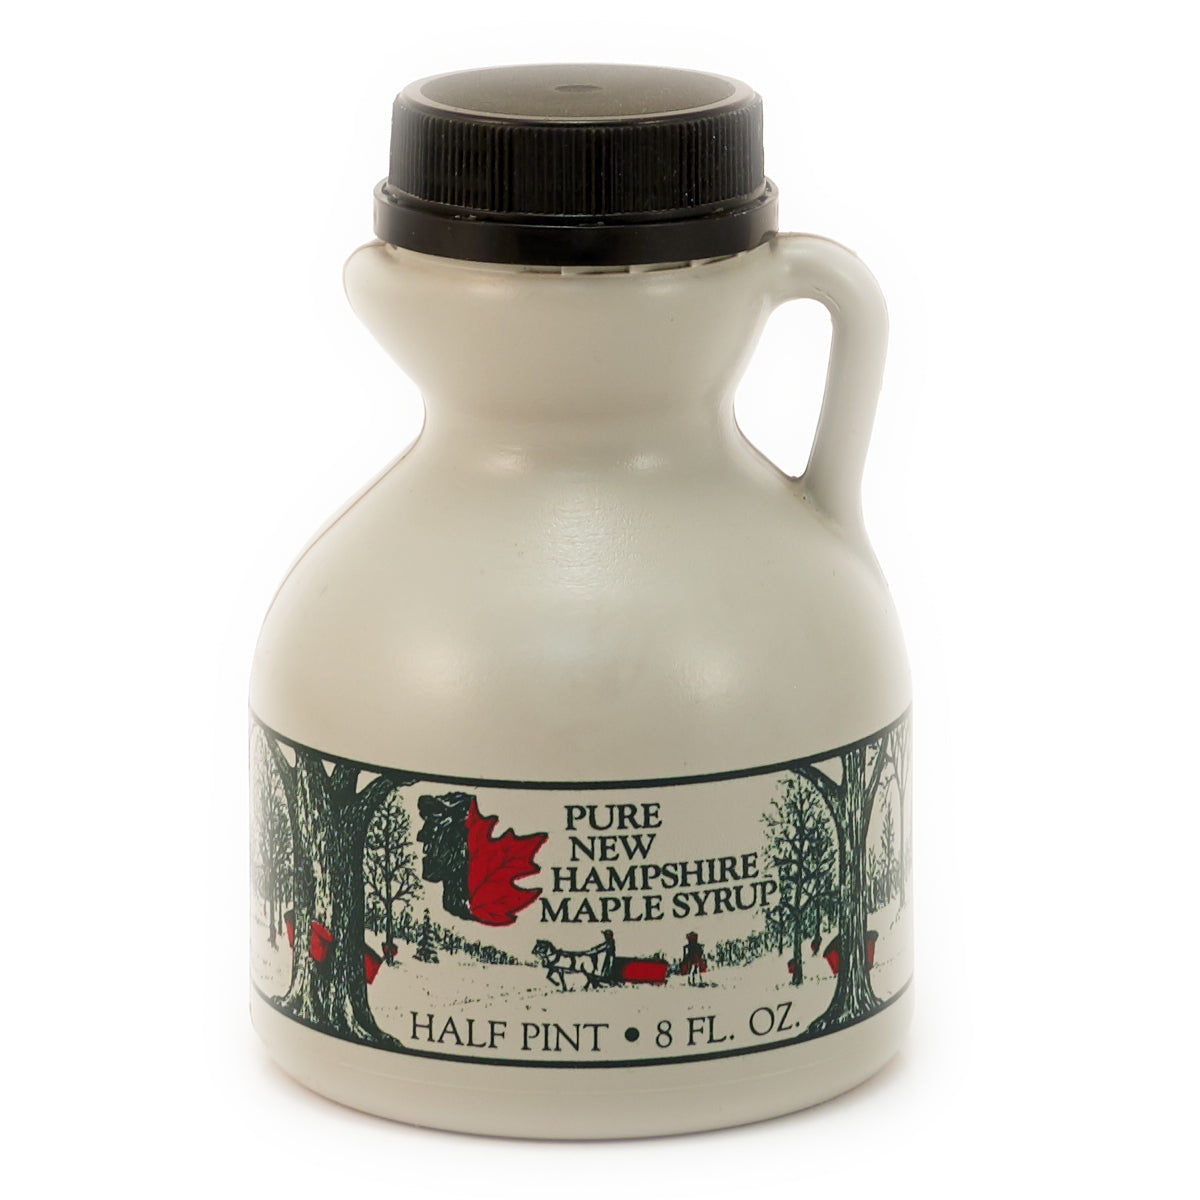 NH 2-Color 1/2 Pint Jug